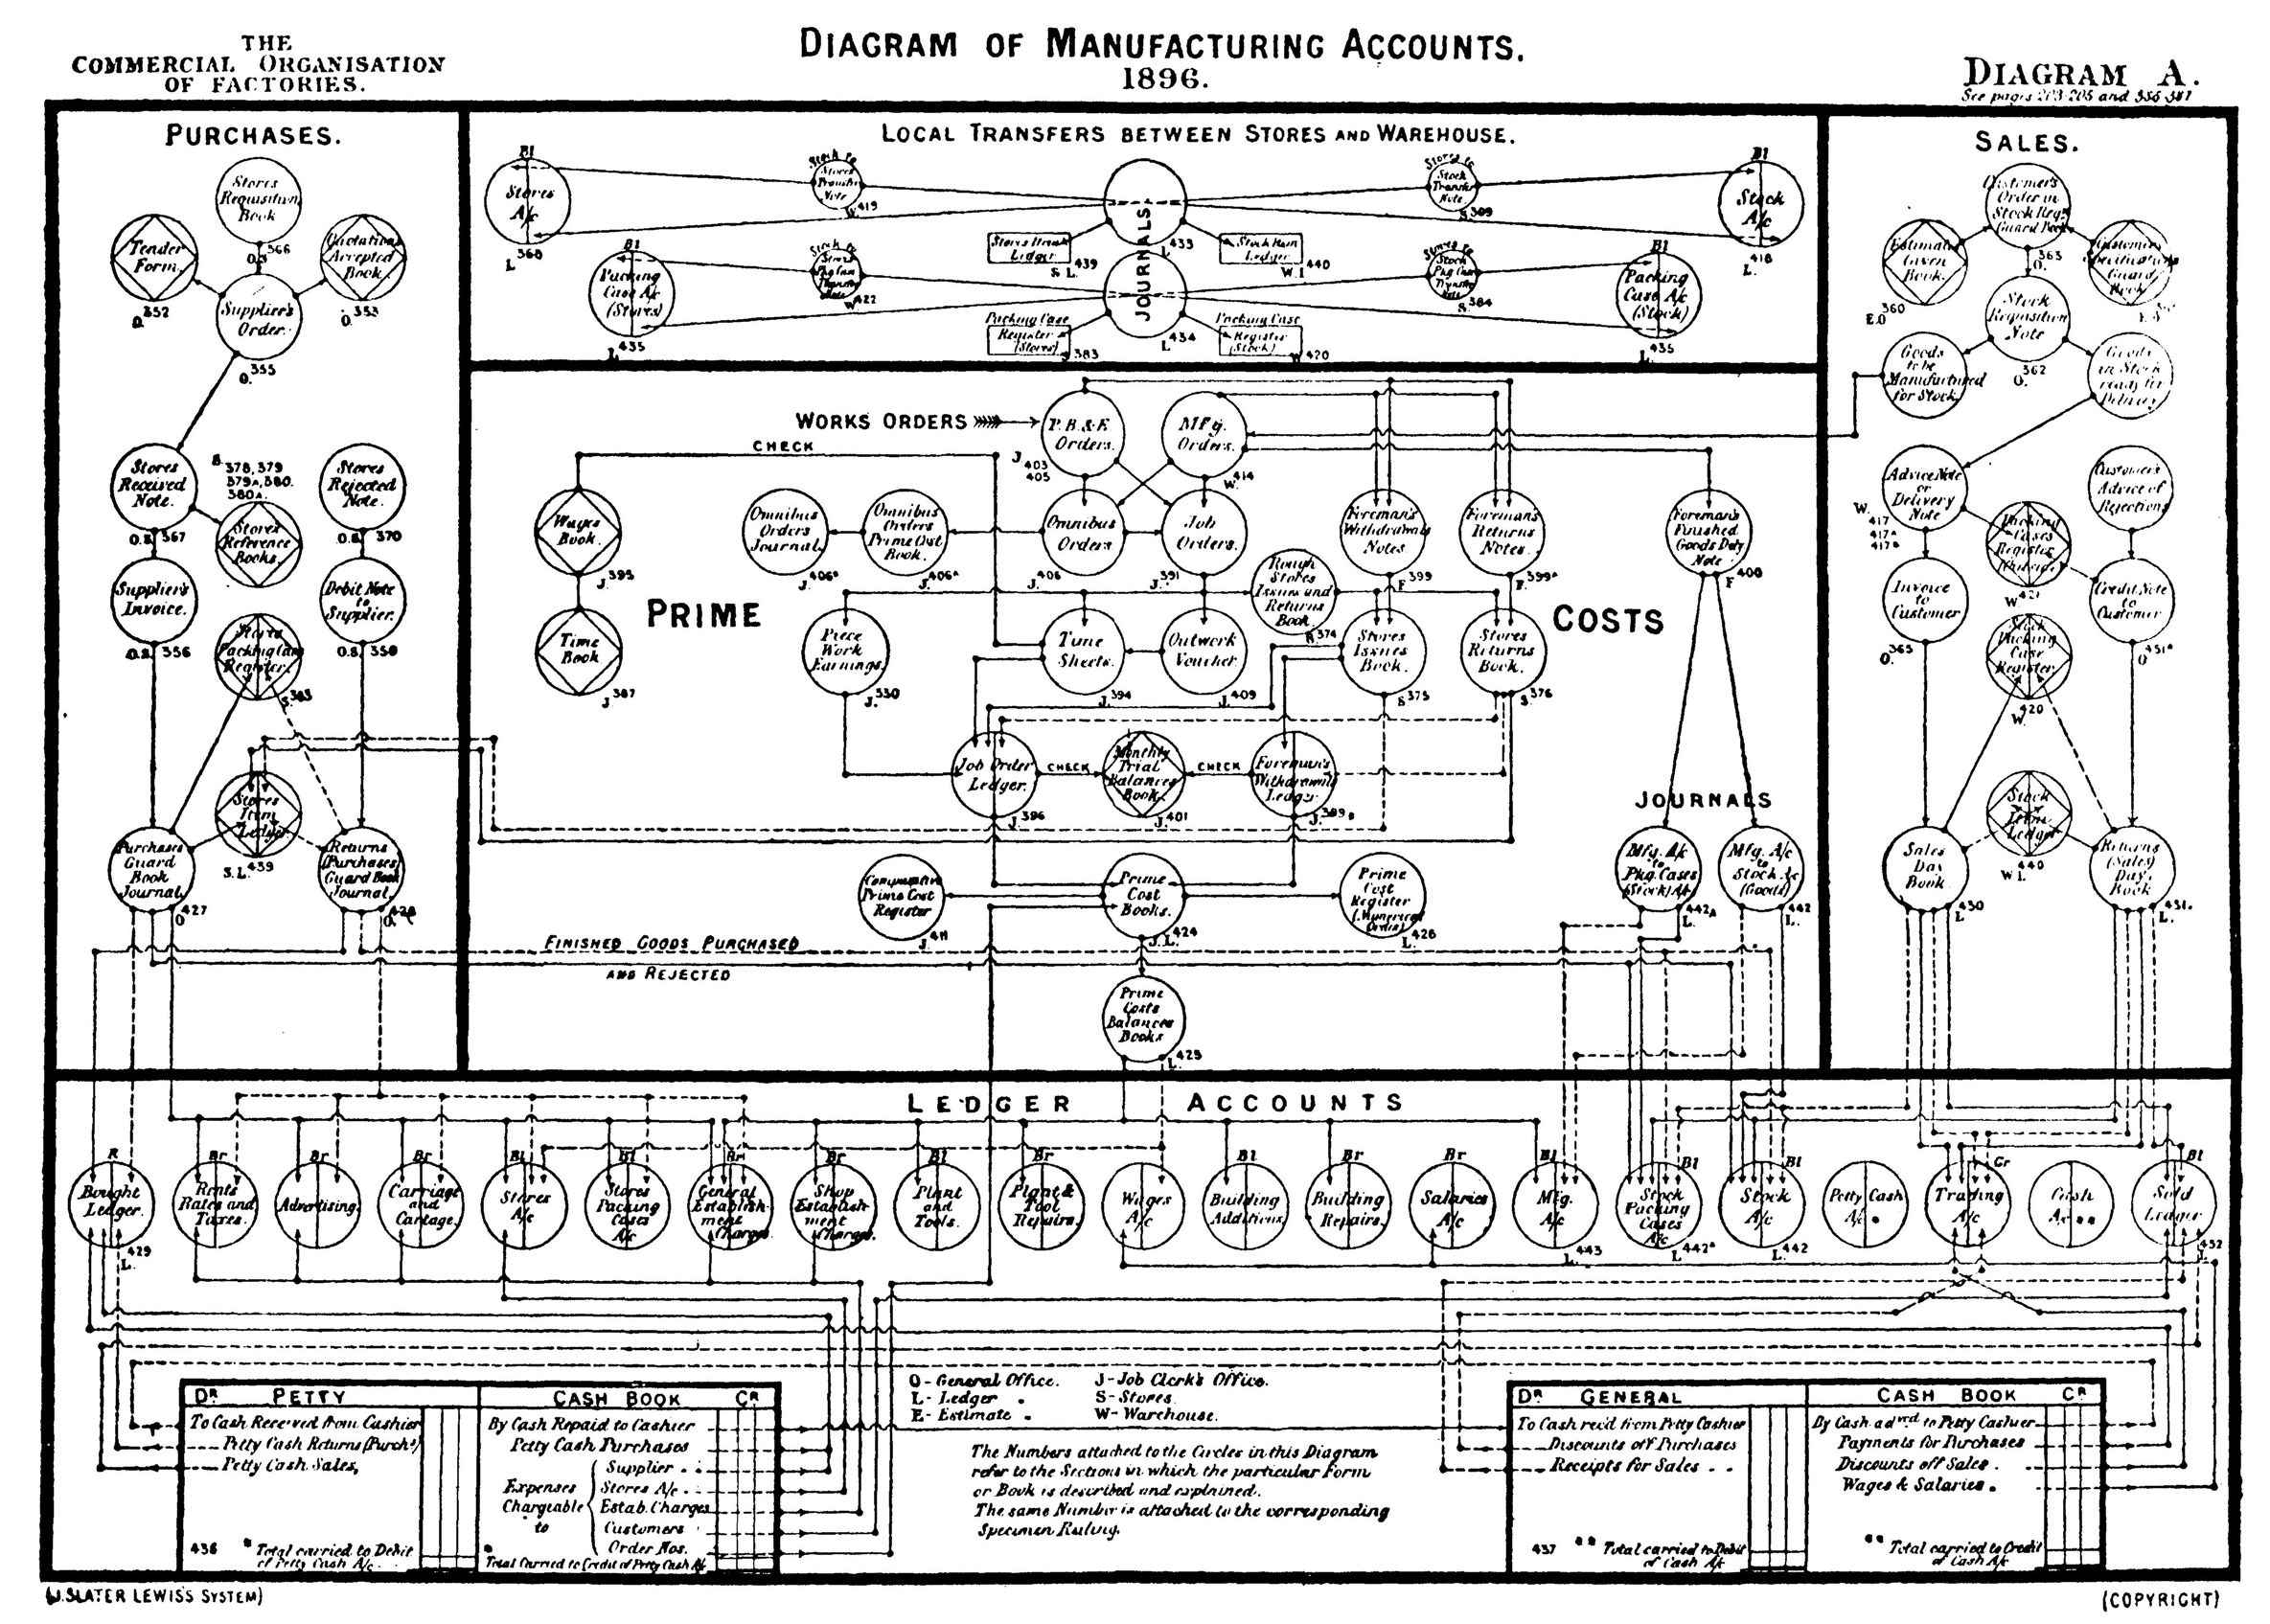 Cash Flow Chart: Diagram of Manufacturing Accounts 1896.jpg - Wikimedia Commons,Chart